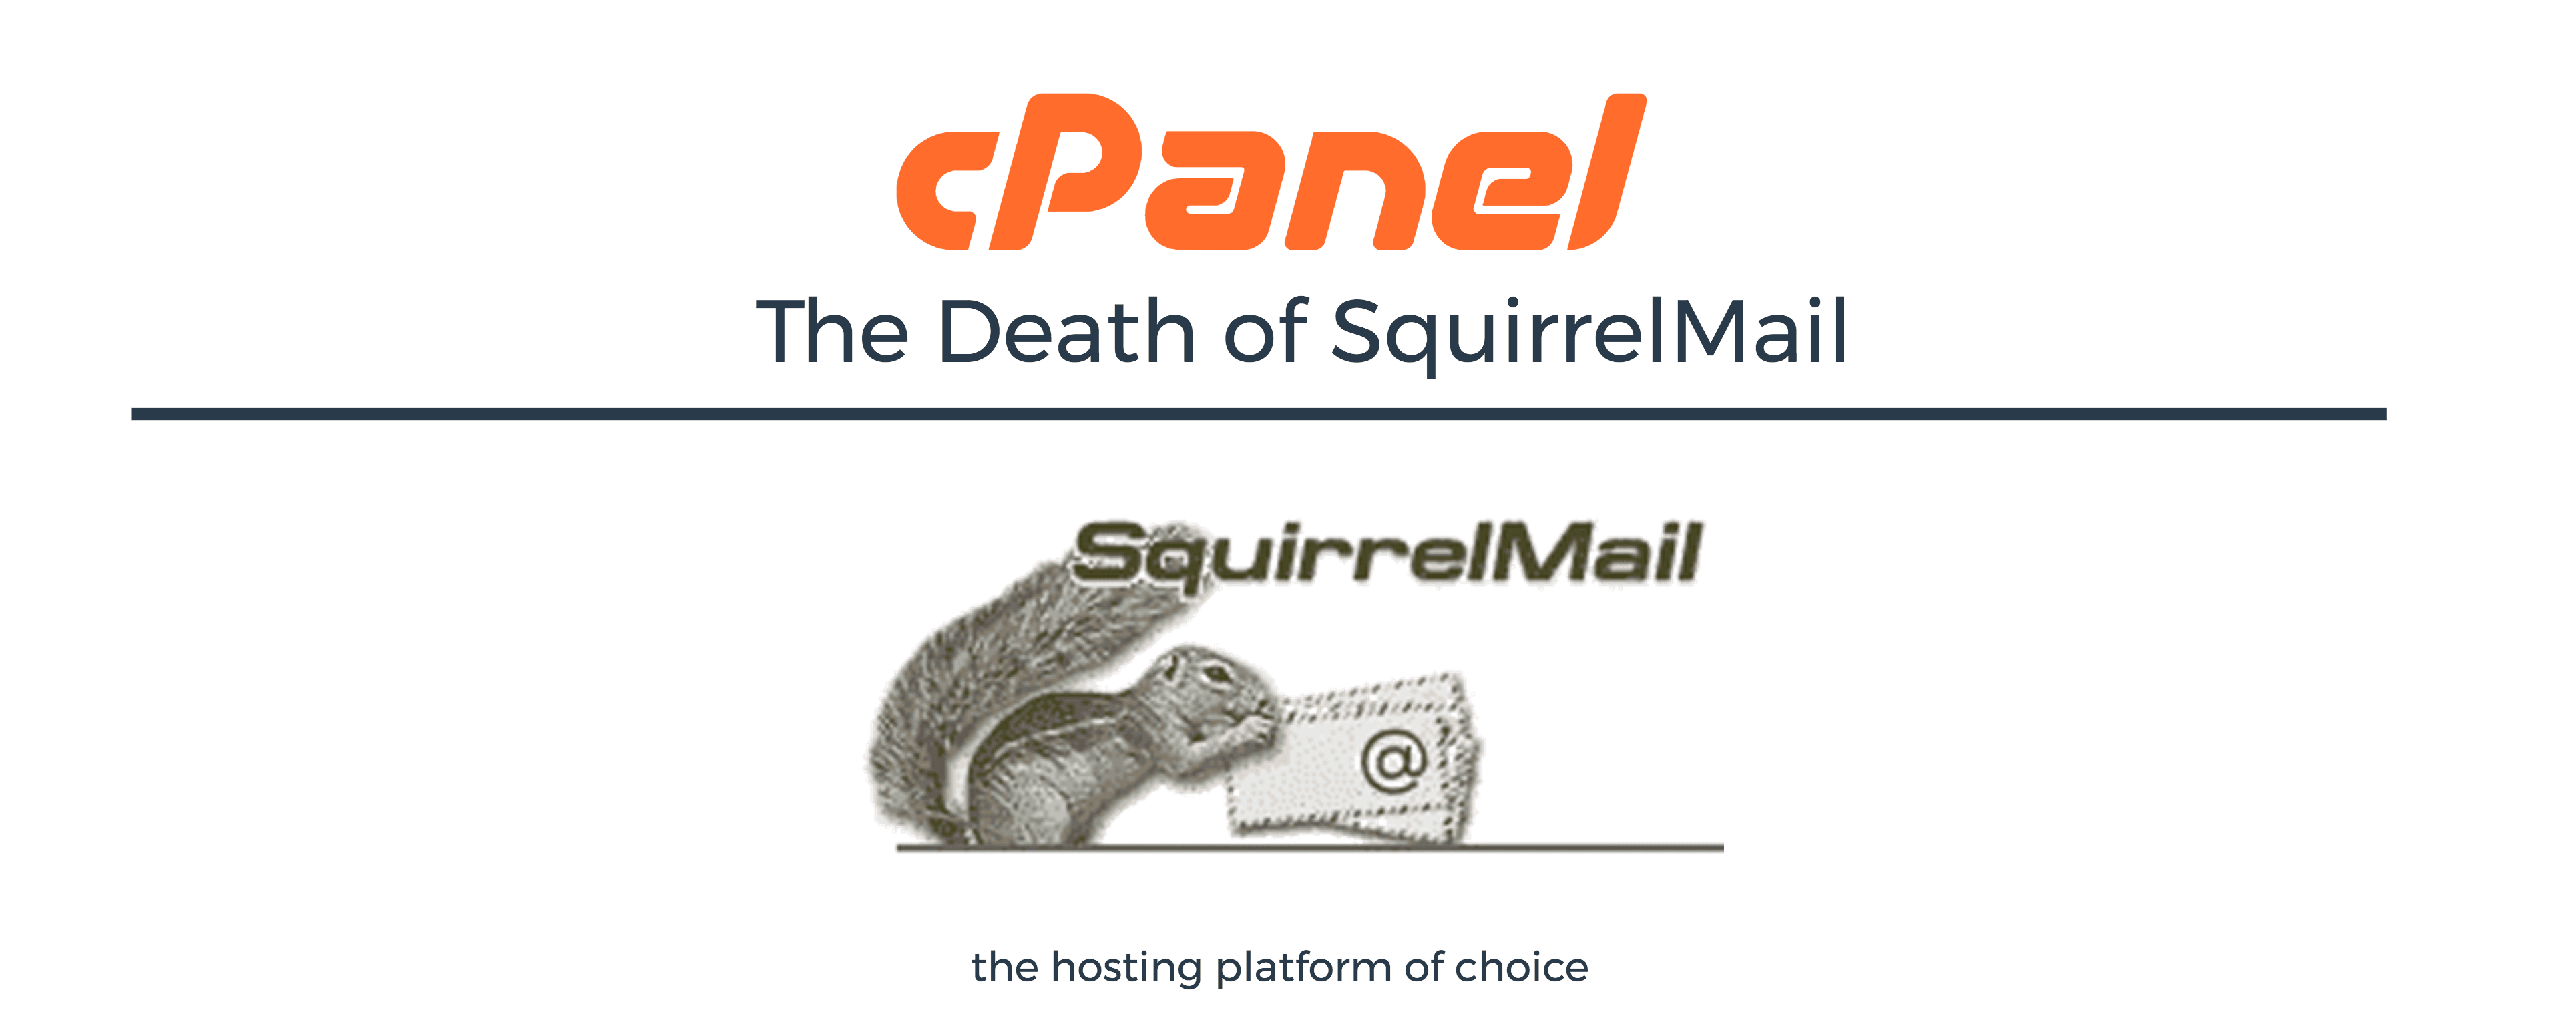 cpanel-squirrelmail-missing-disabled